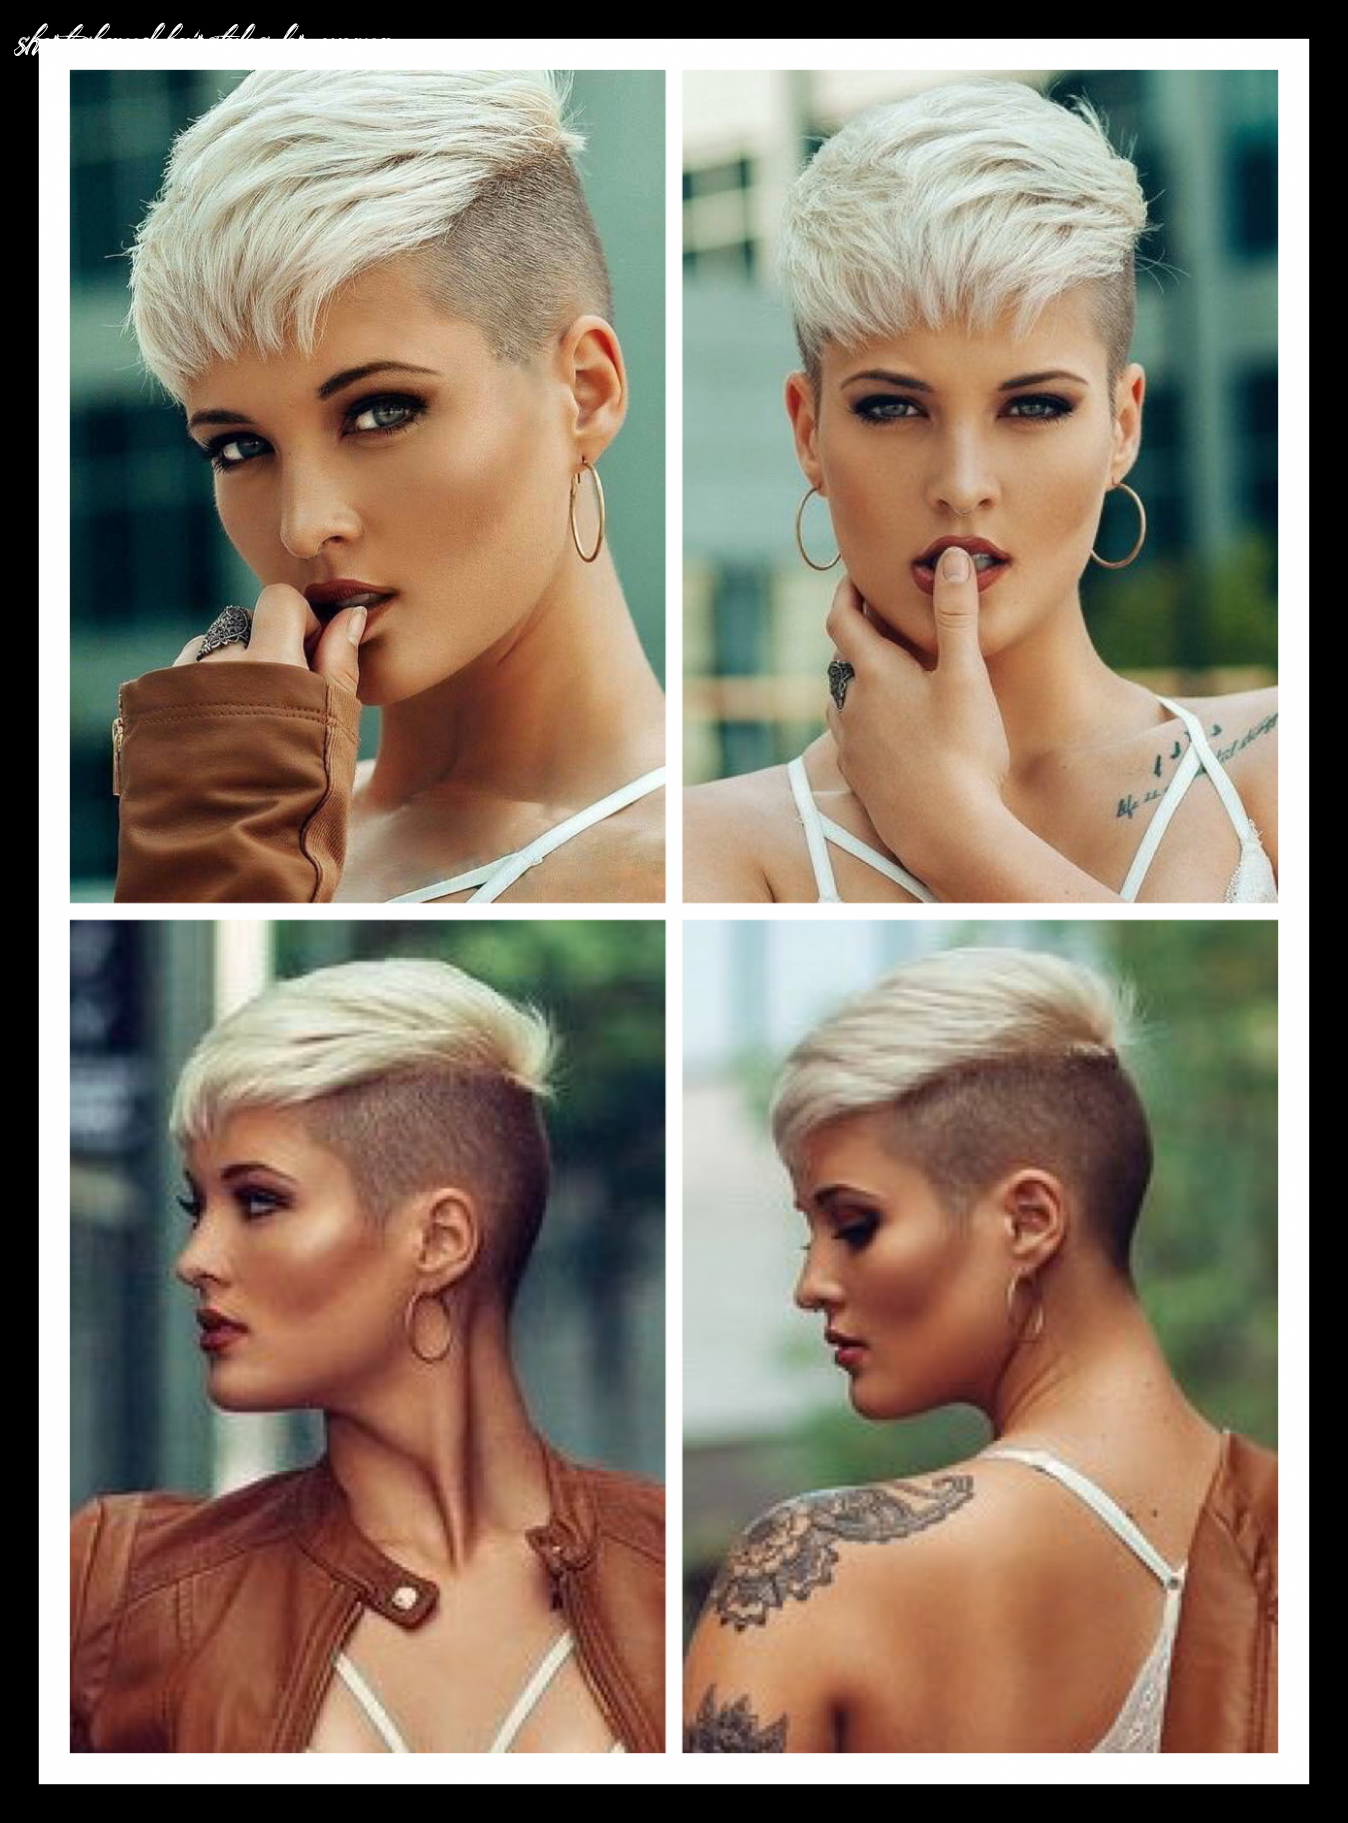 Pin on hair ideas short shaved hairstyles for women